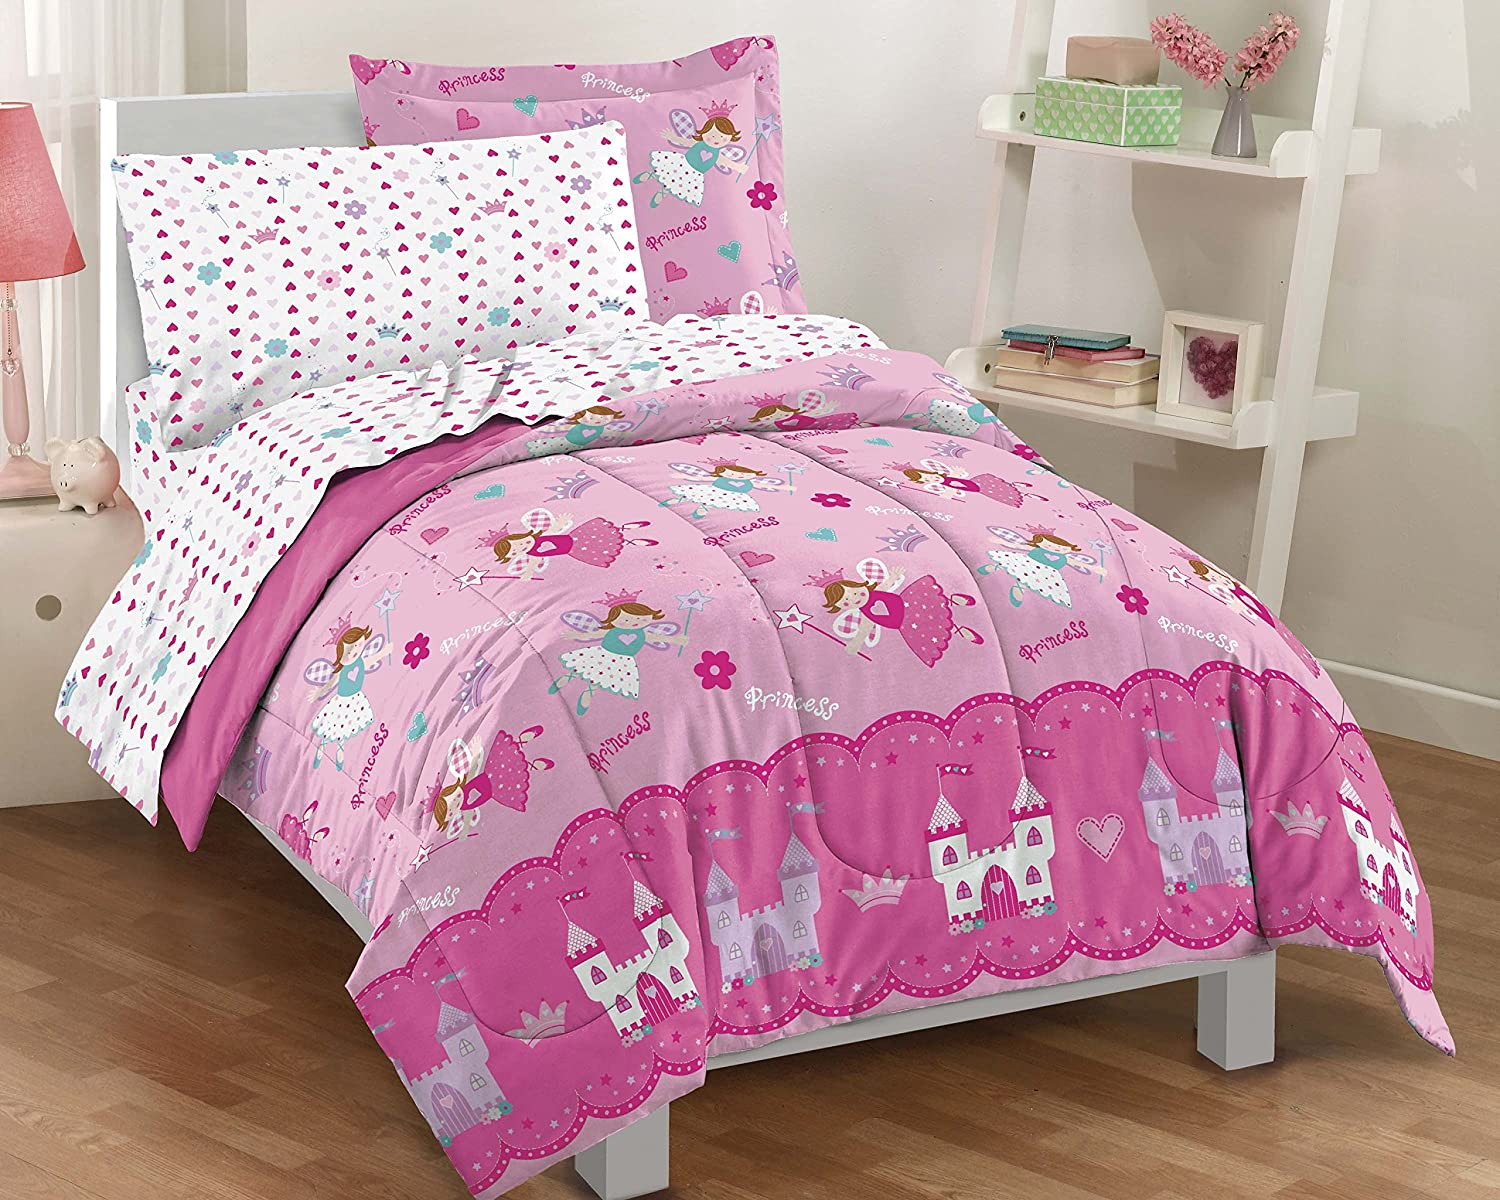 Teen Girls Pink Dusty Pink Rose Bedding Sets  Ease Bedding With Style-5914